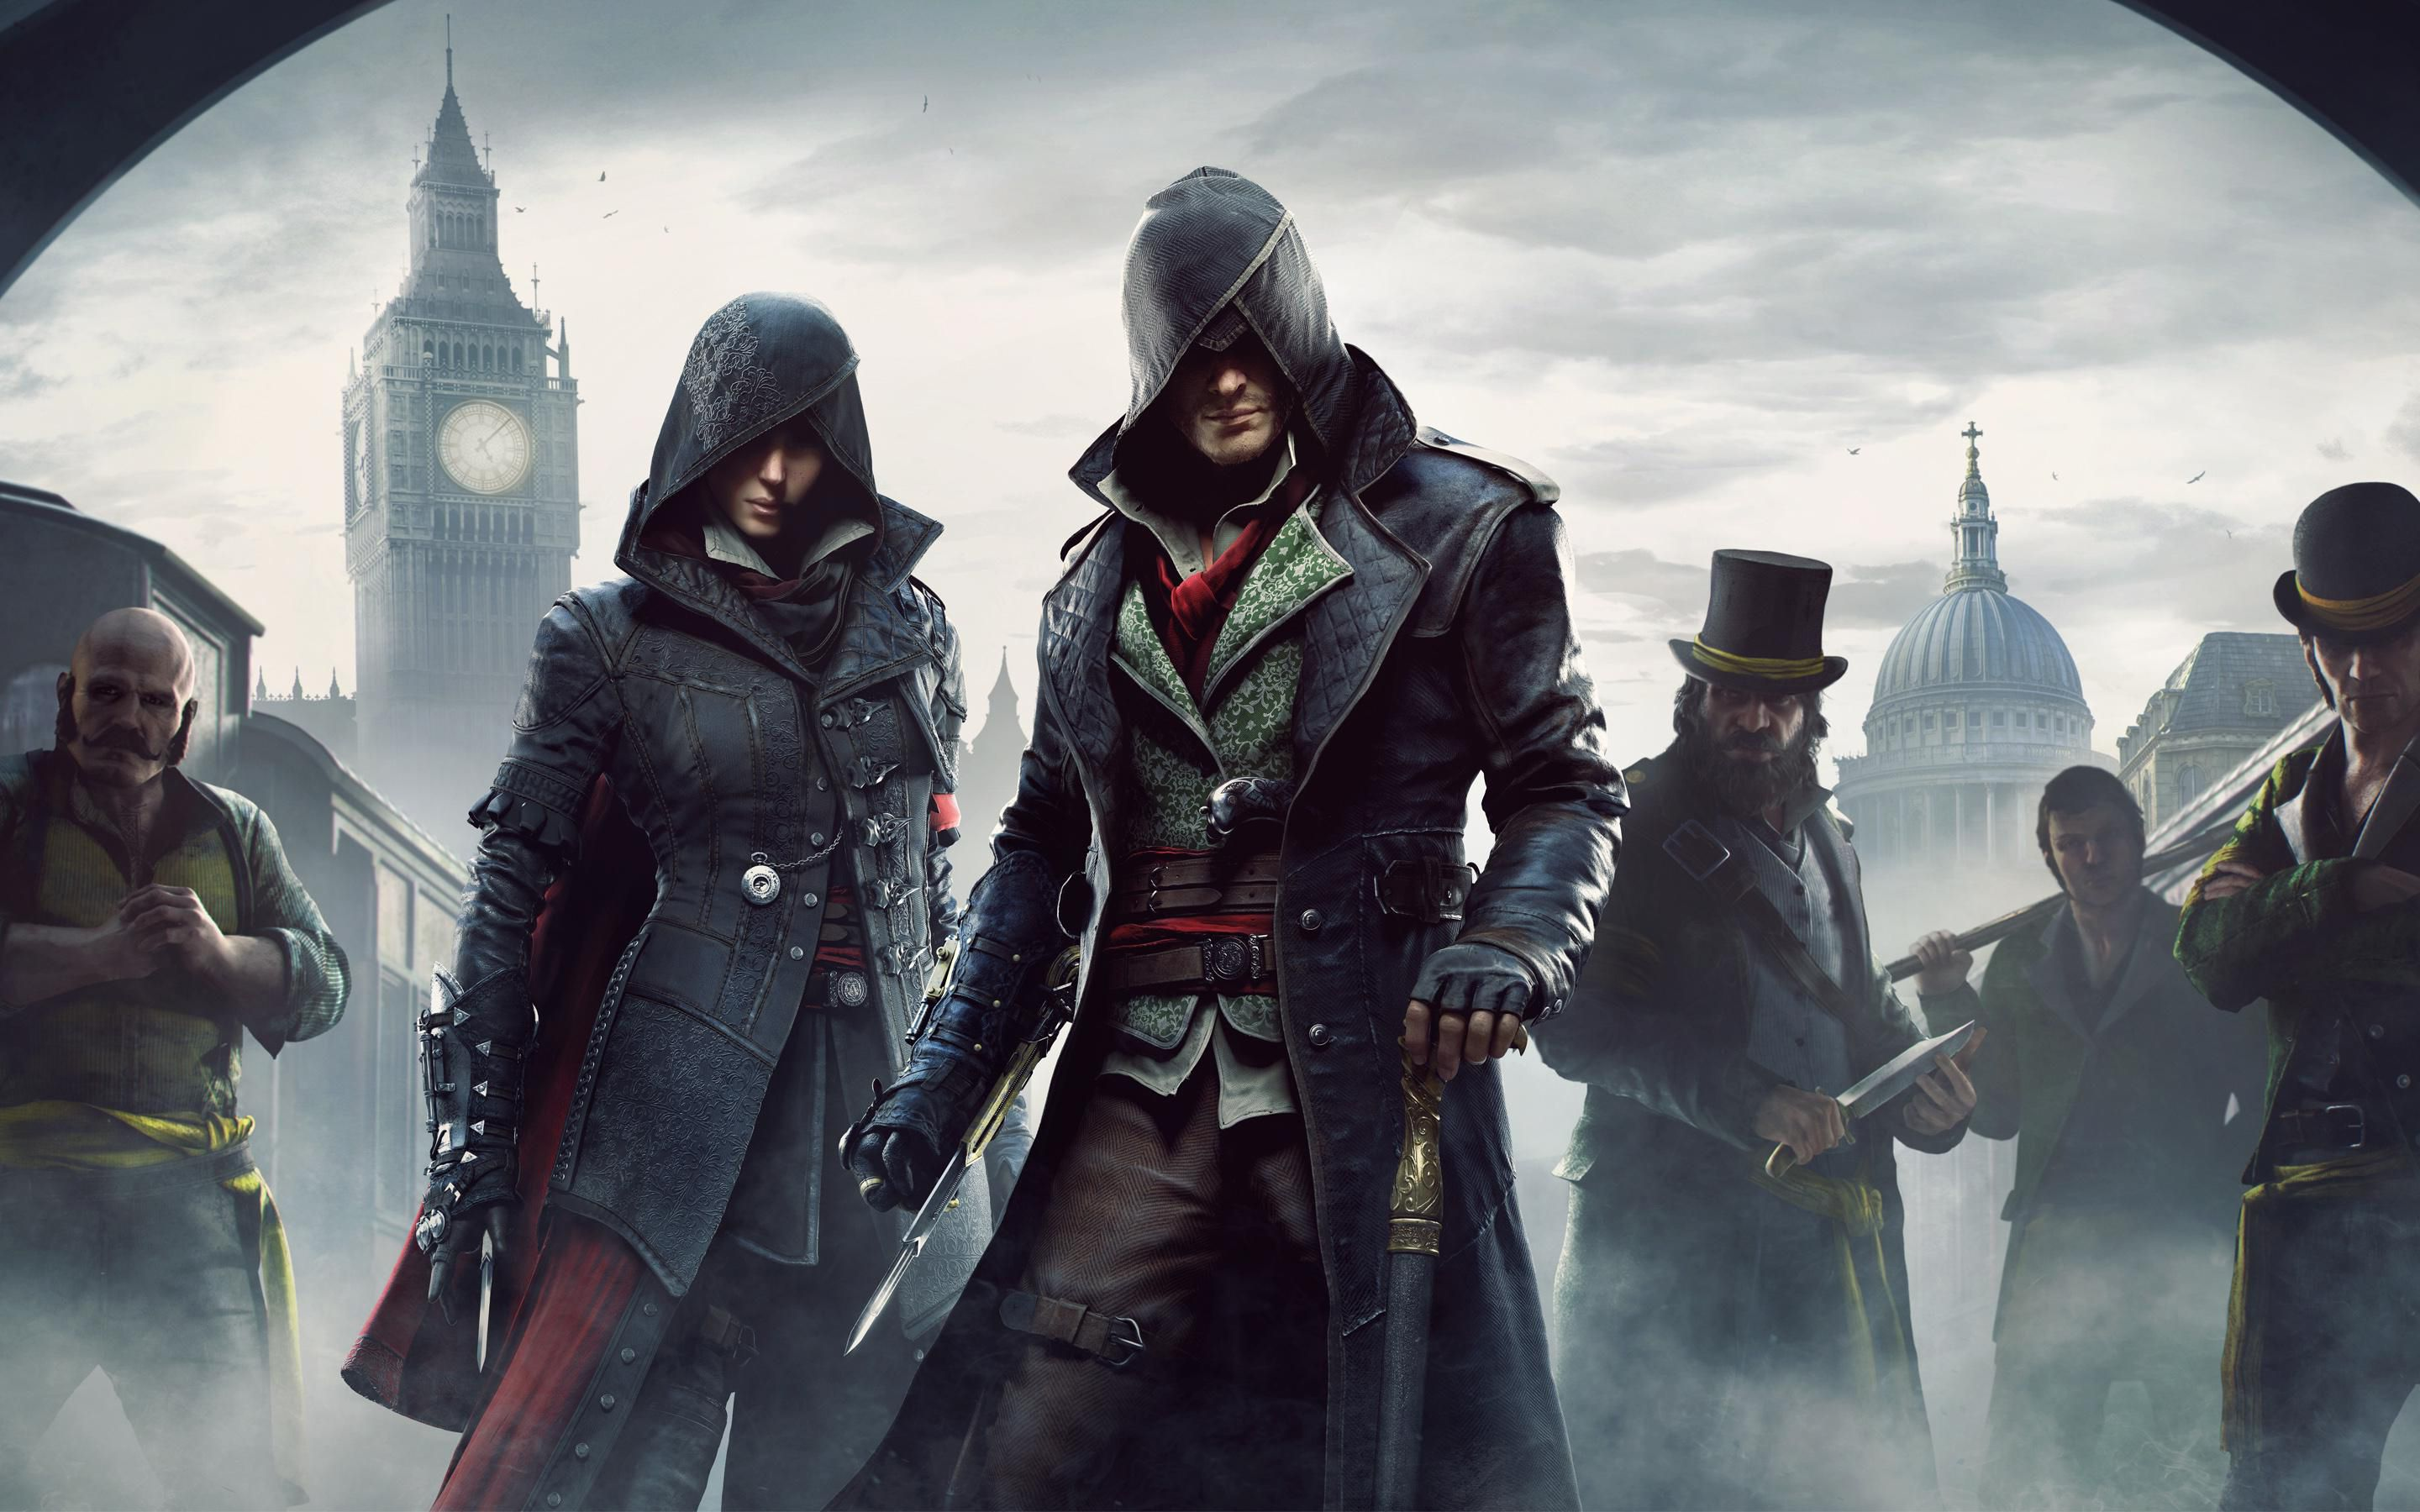 assassin'-s creed syndicate jacob and evie wallpaper - Google ...